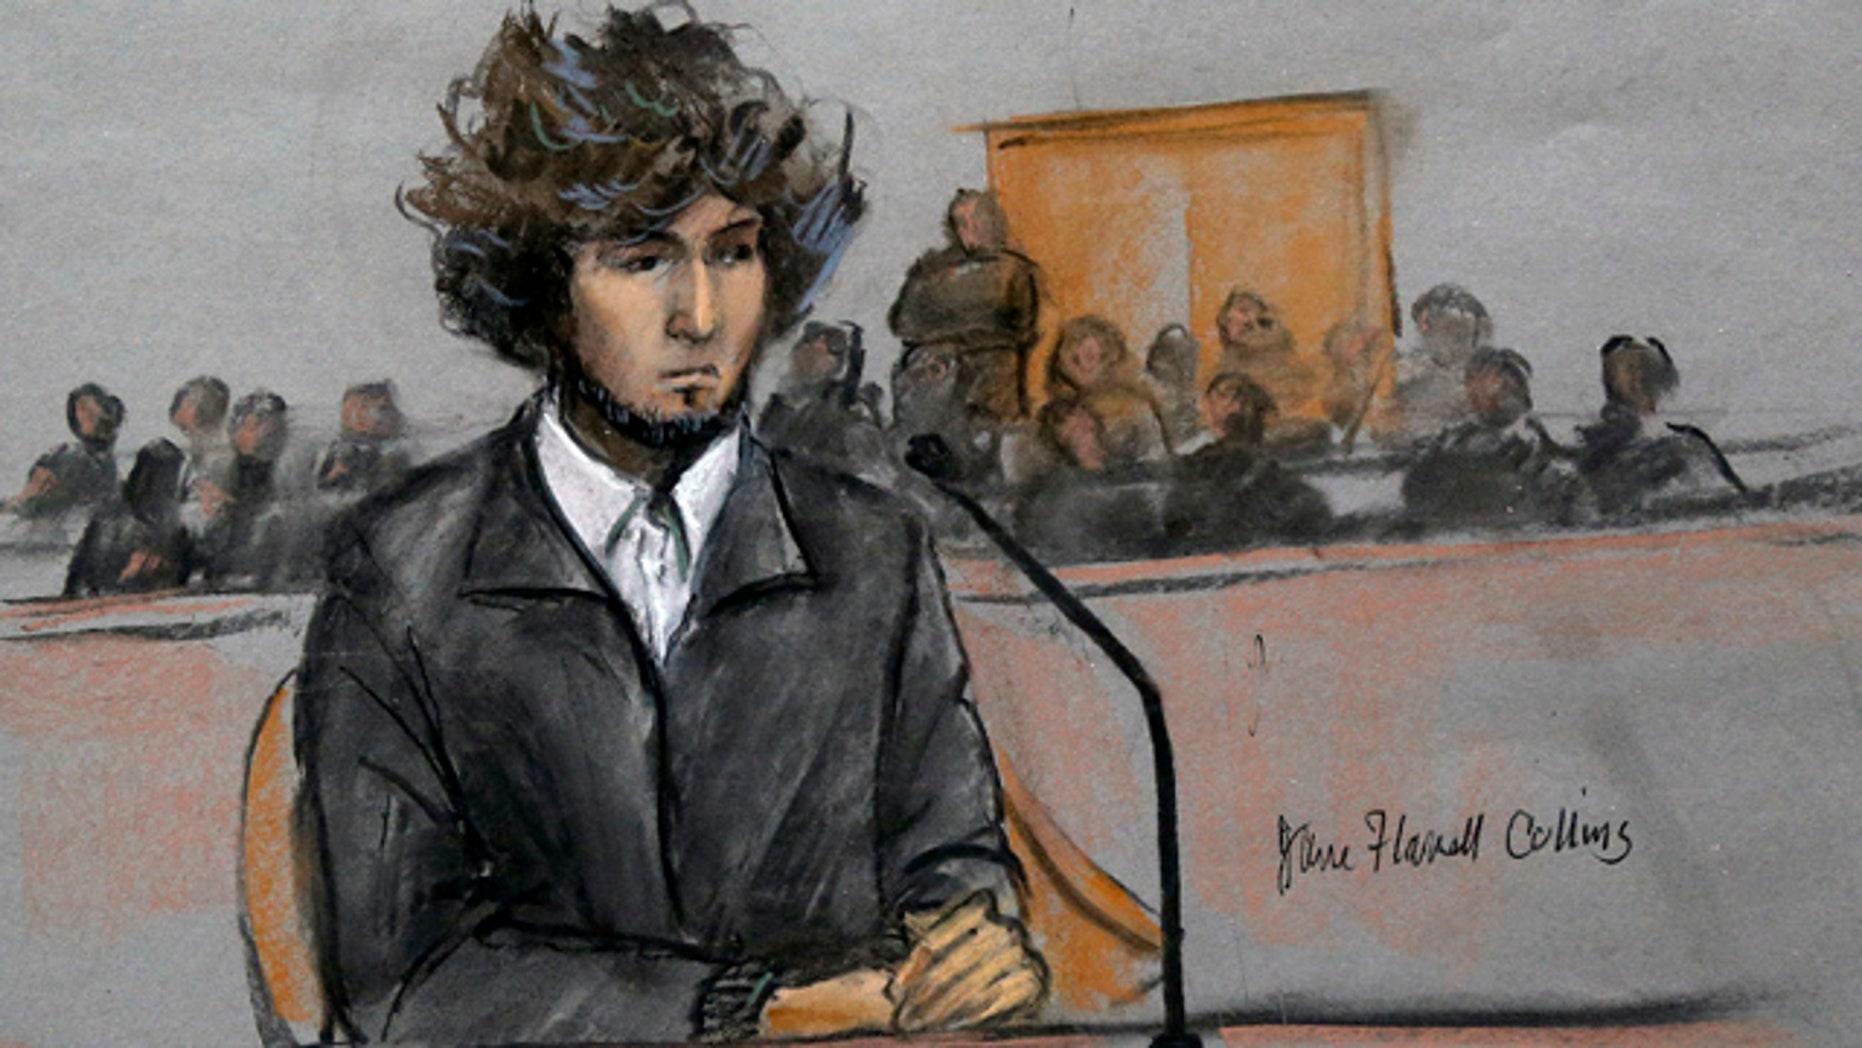 FILE - In this Dec. 18, 2014, courtroom sketch, Boston Marathon bombing suspect Dzhokhar Tsarnaev sits in federal court in Boston. (Jane Flavell Collins via AP, File)